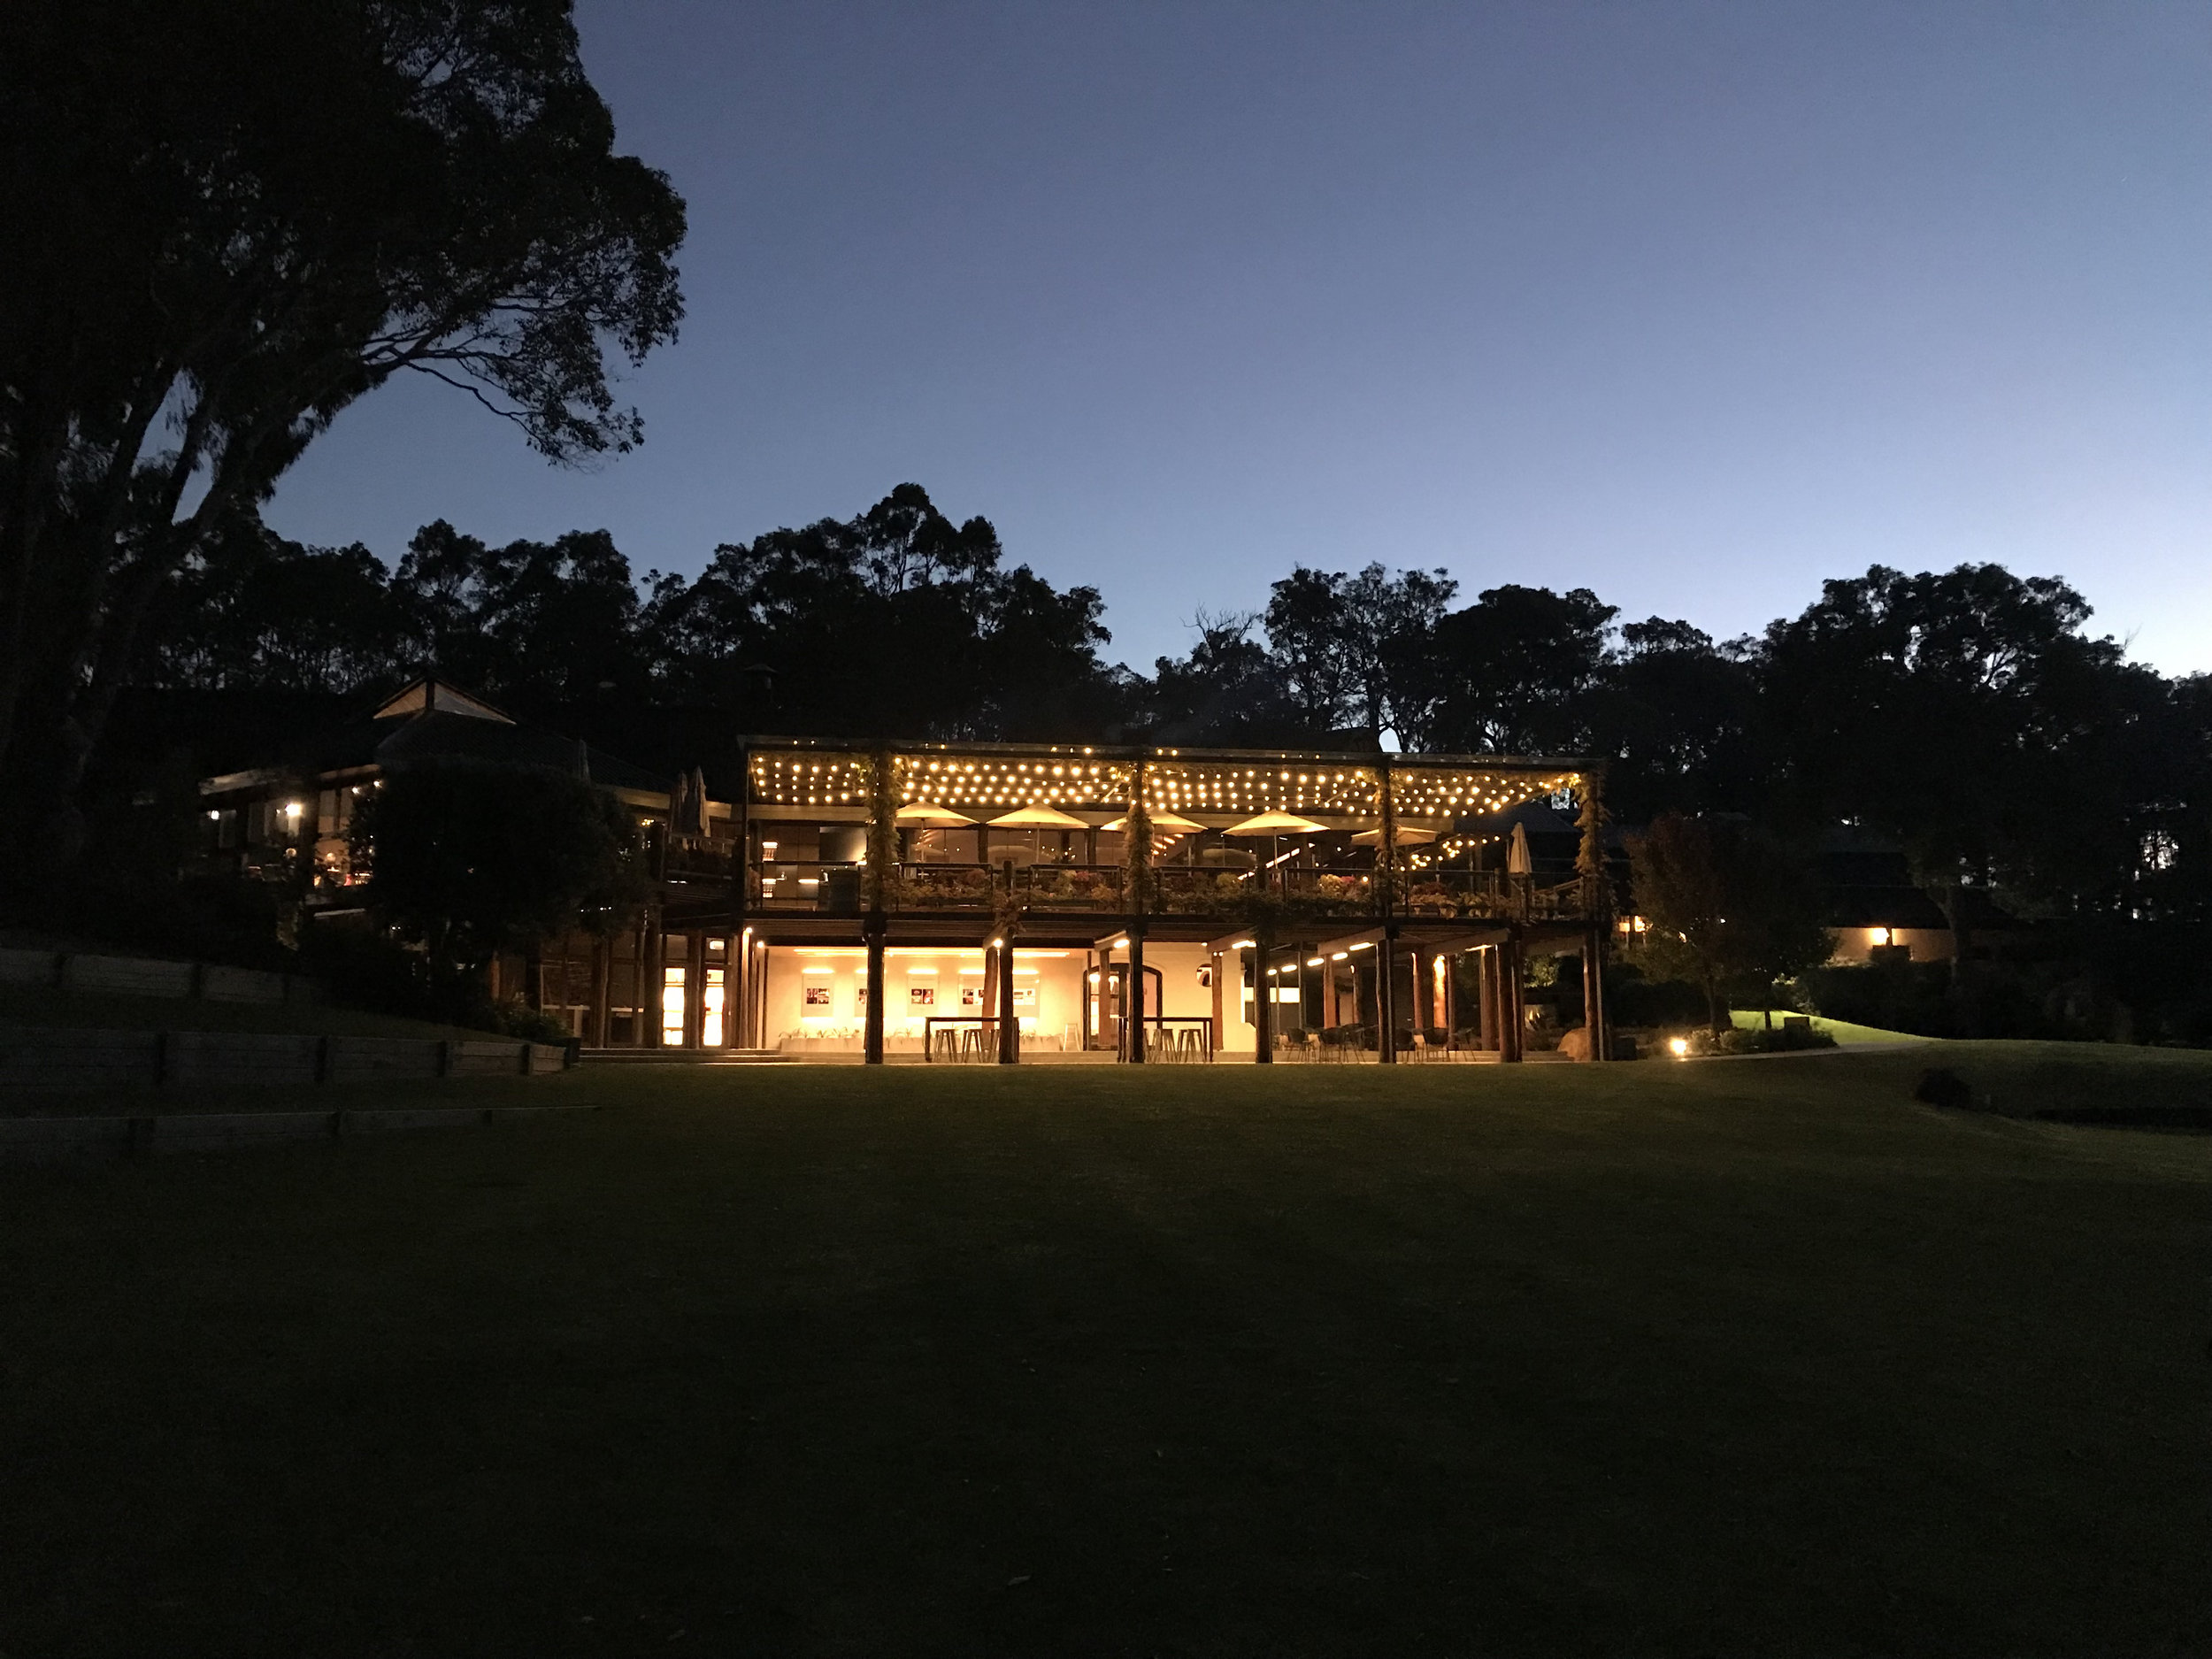 It's almost dinner time at Leeuwin Estate.